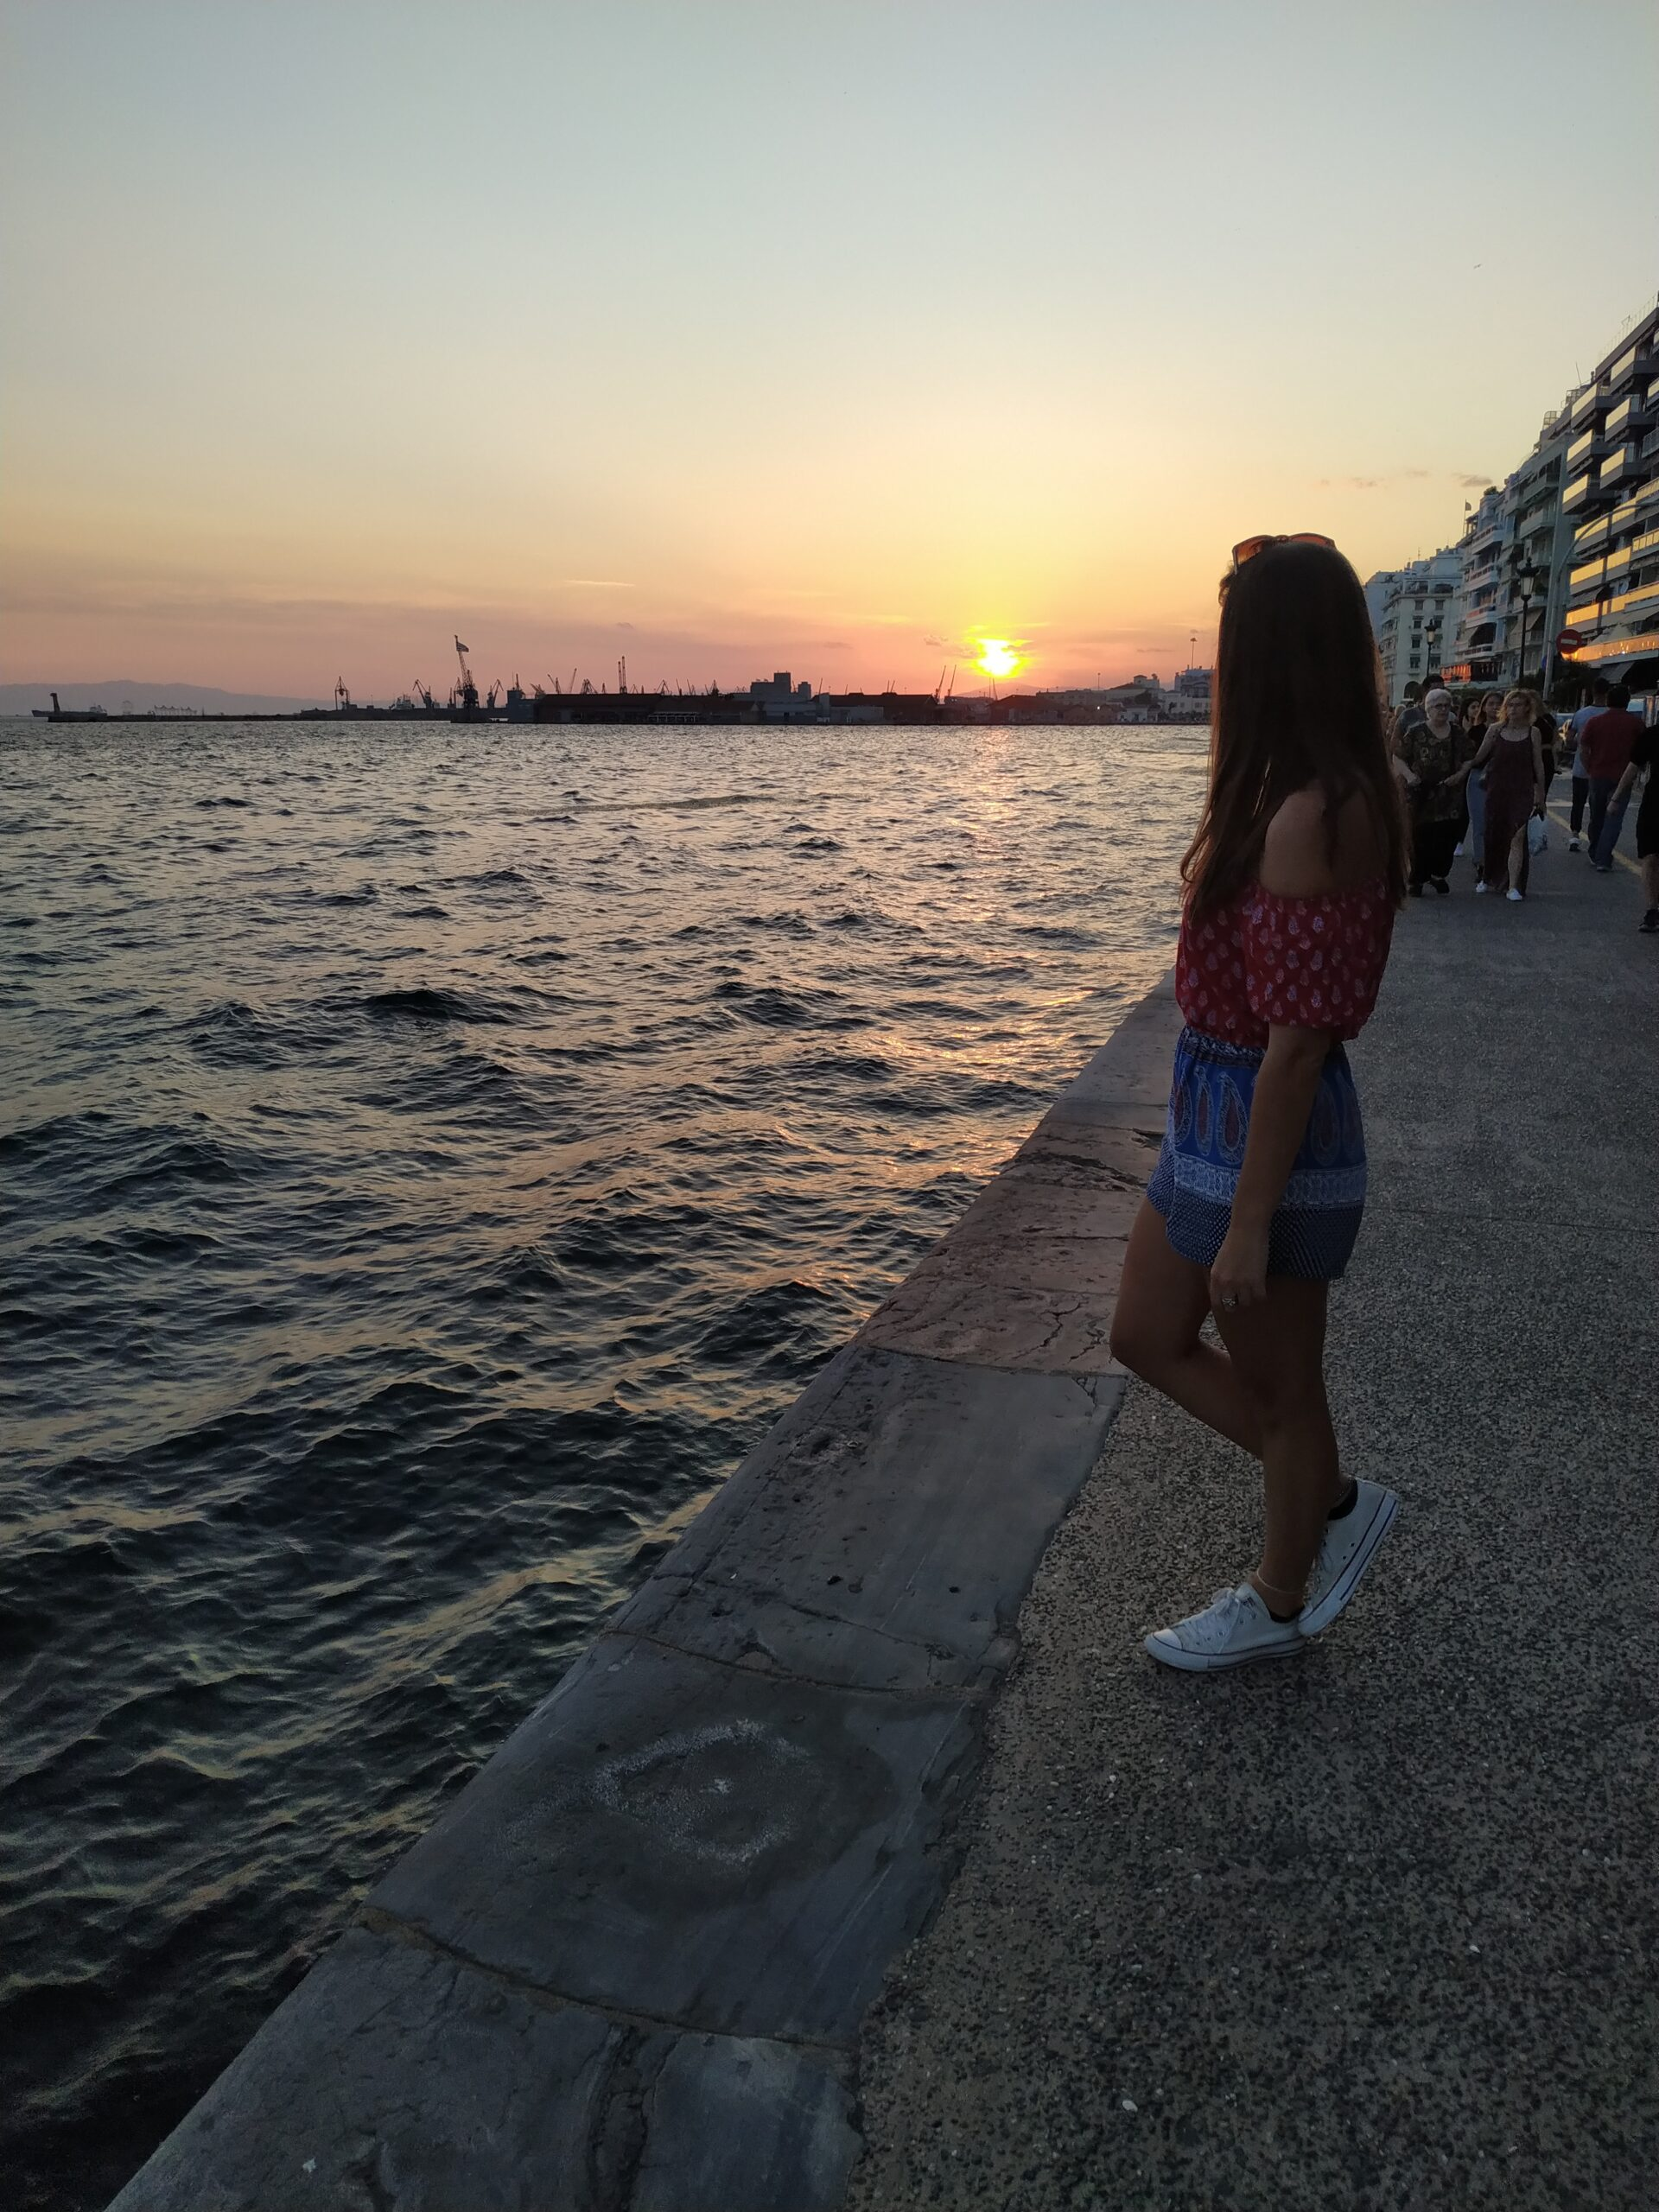 Sunset at the port of Thessaloniki